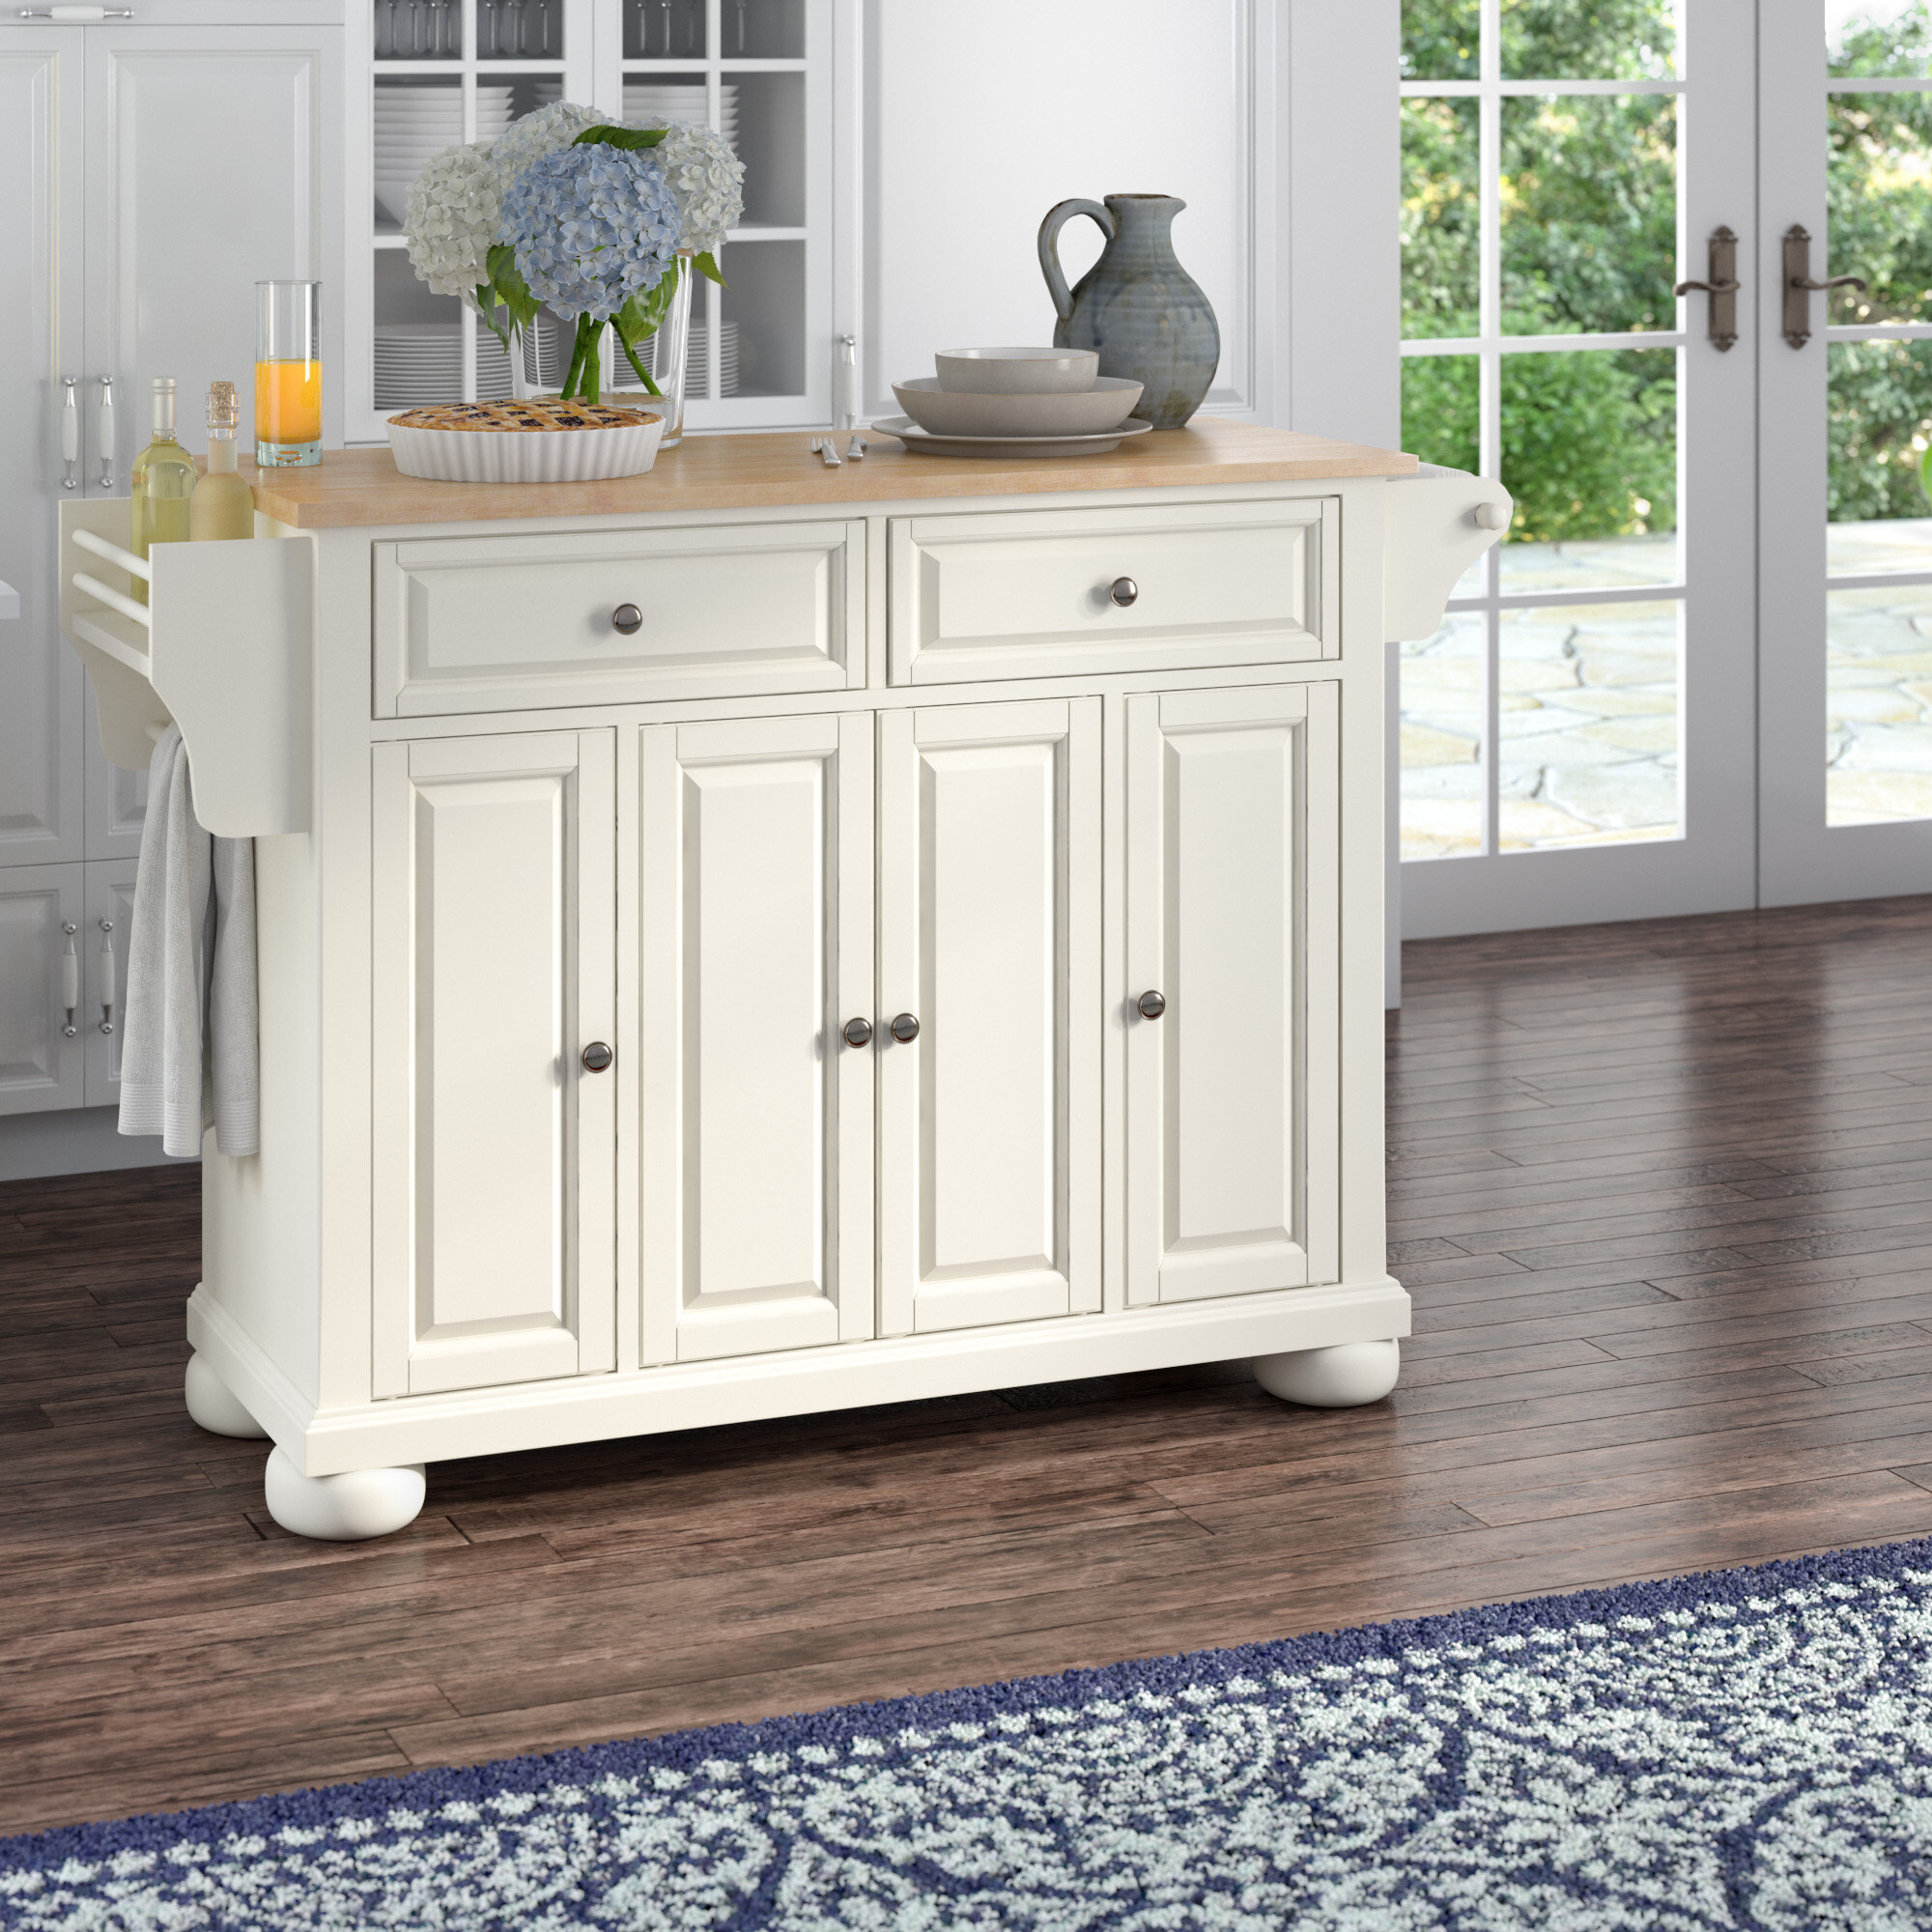 design island annieskitchenmingle cabinetry dining kitchen nook plenty this for and islands room a products supreme l incorporates seating breakfast shaped dura tables kitchens